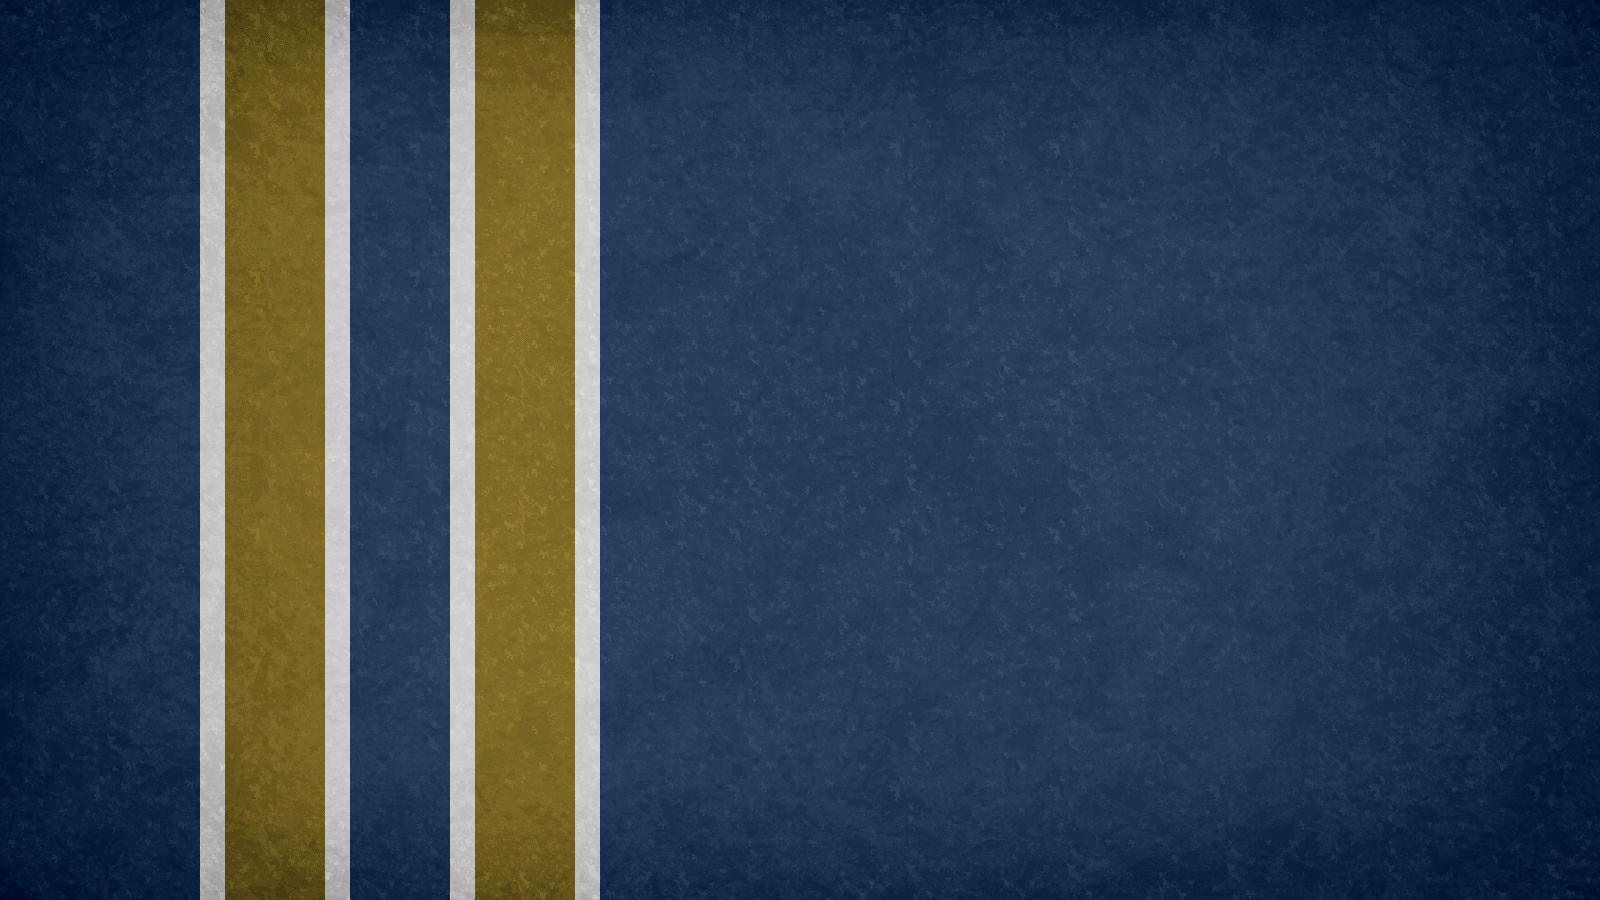 Blue And Gold PNG - 148383